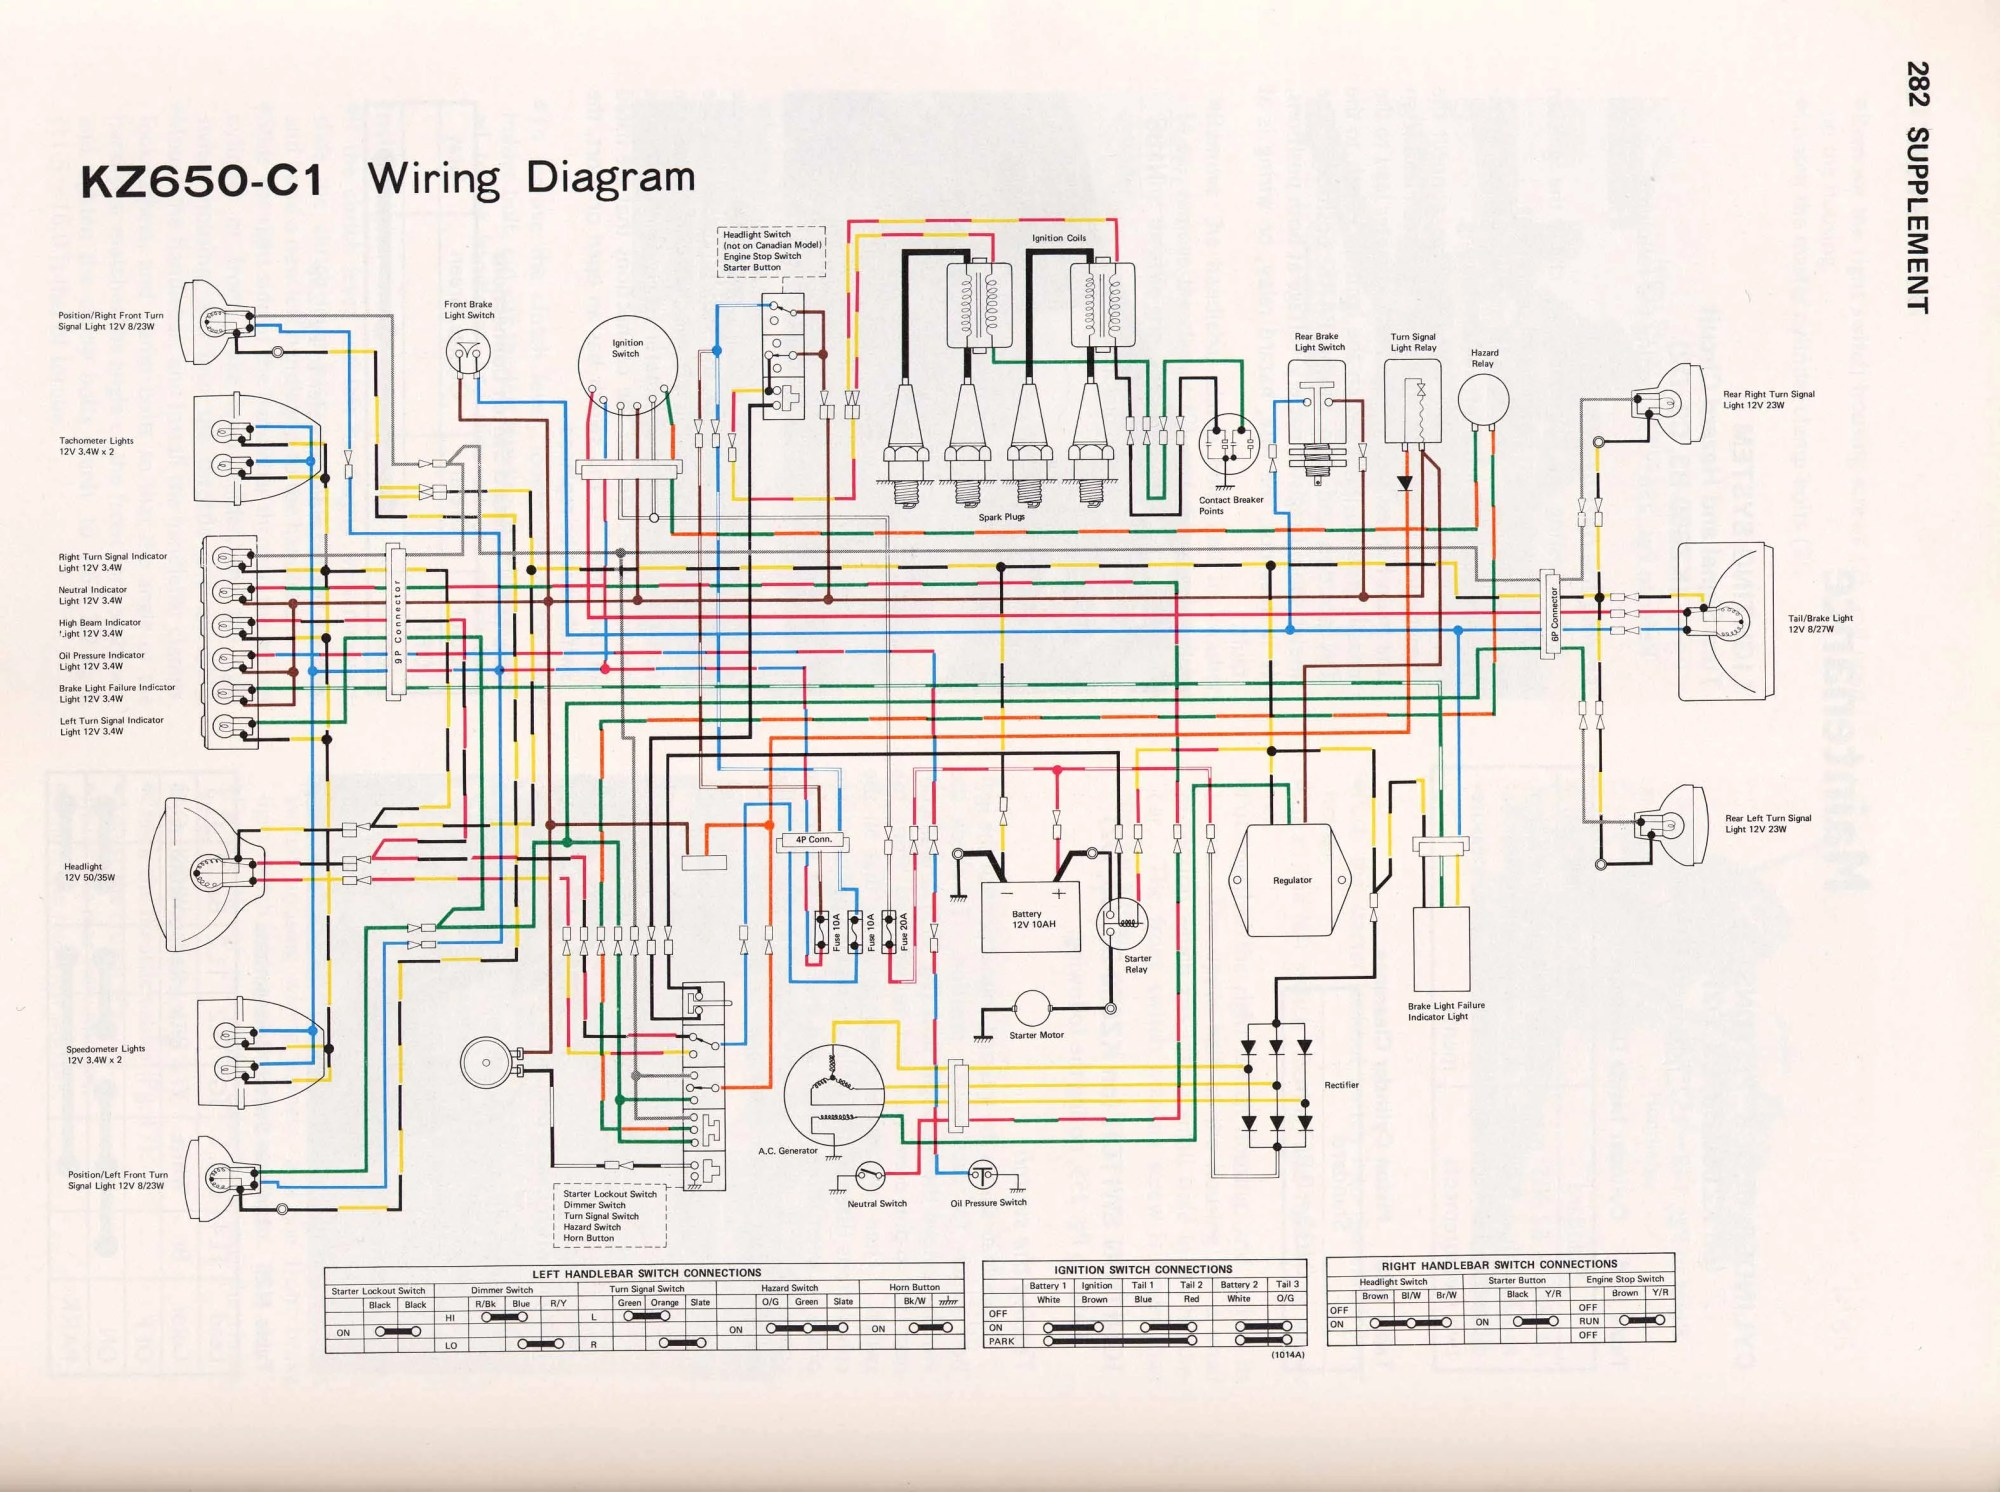 hight resolution of 1978 kawasaki z1000 wiring diagram wiring diagrams site rh 1 geraldsorger de kawasaki kz650 wiring diagram kawasaki motorcycle x 1000r wiring diagram